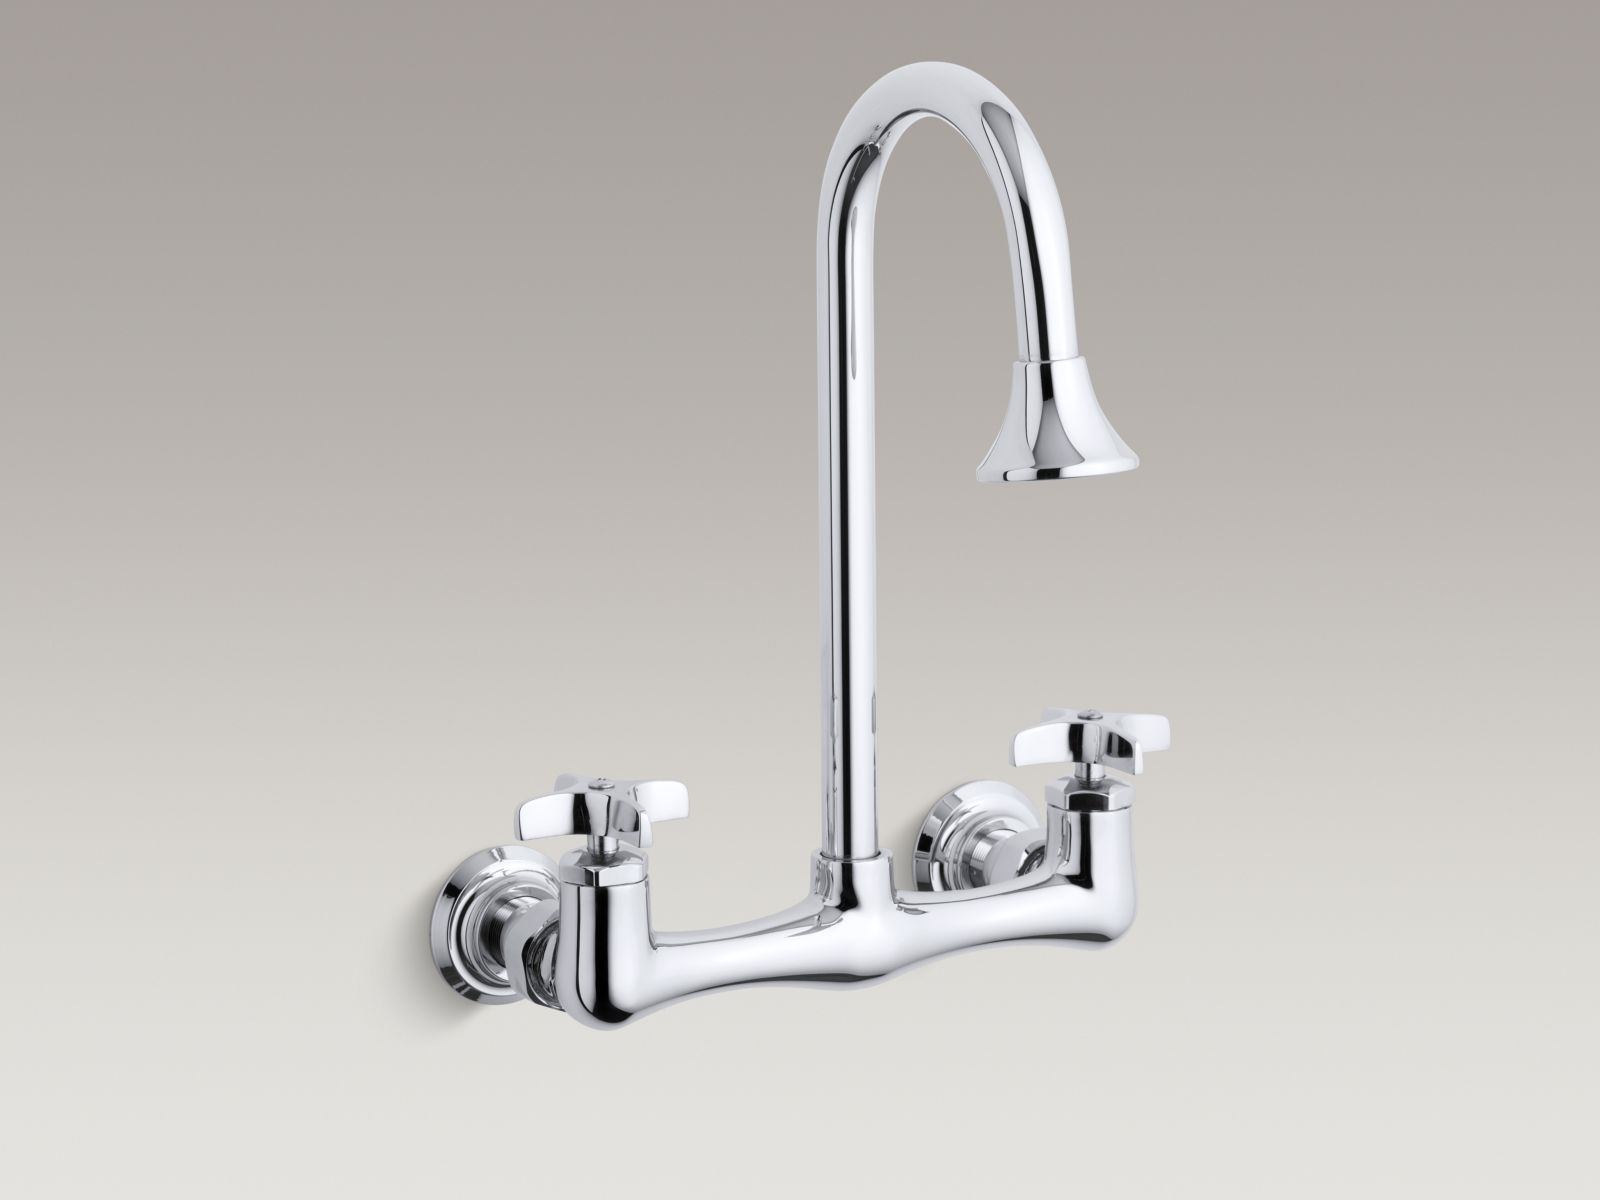 Ideas, utility tub faucet with sprayer utility tub faucet with sprayer standard plumbing supply category results for wall mount faucet 1600 x 1200  .